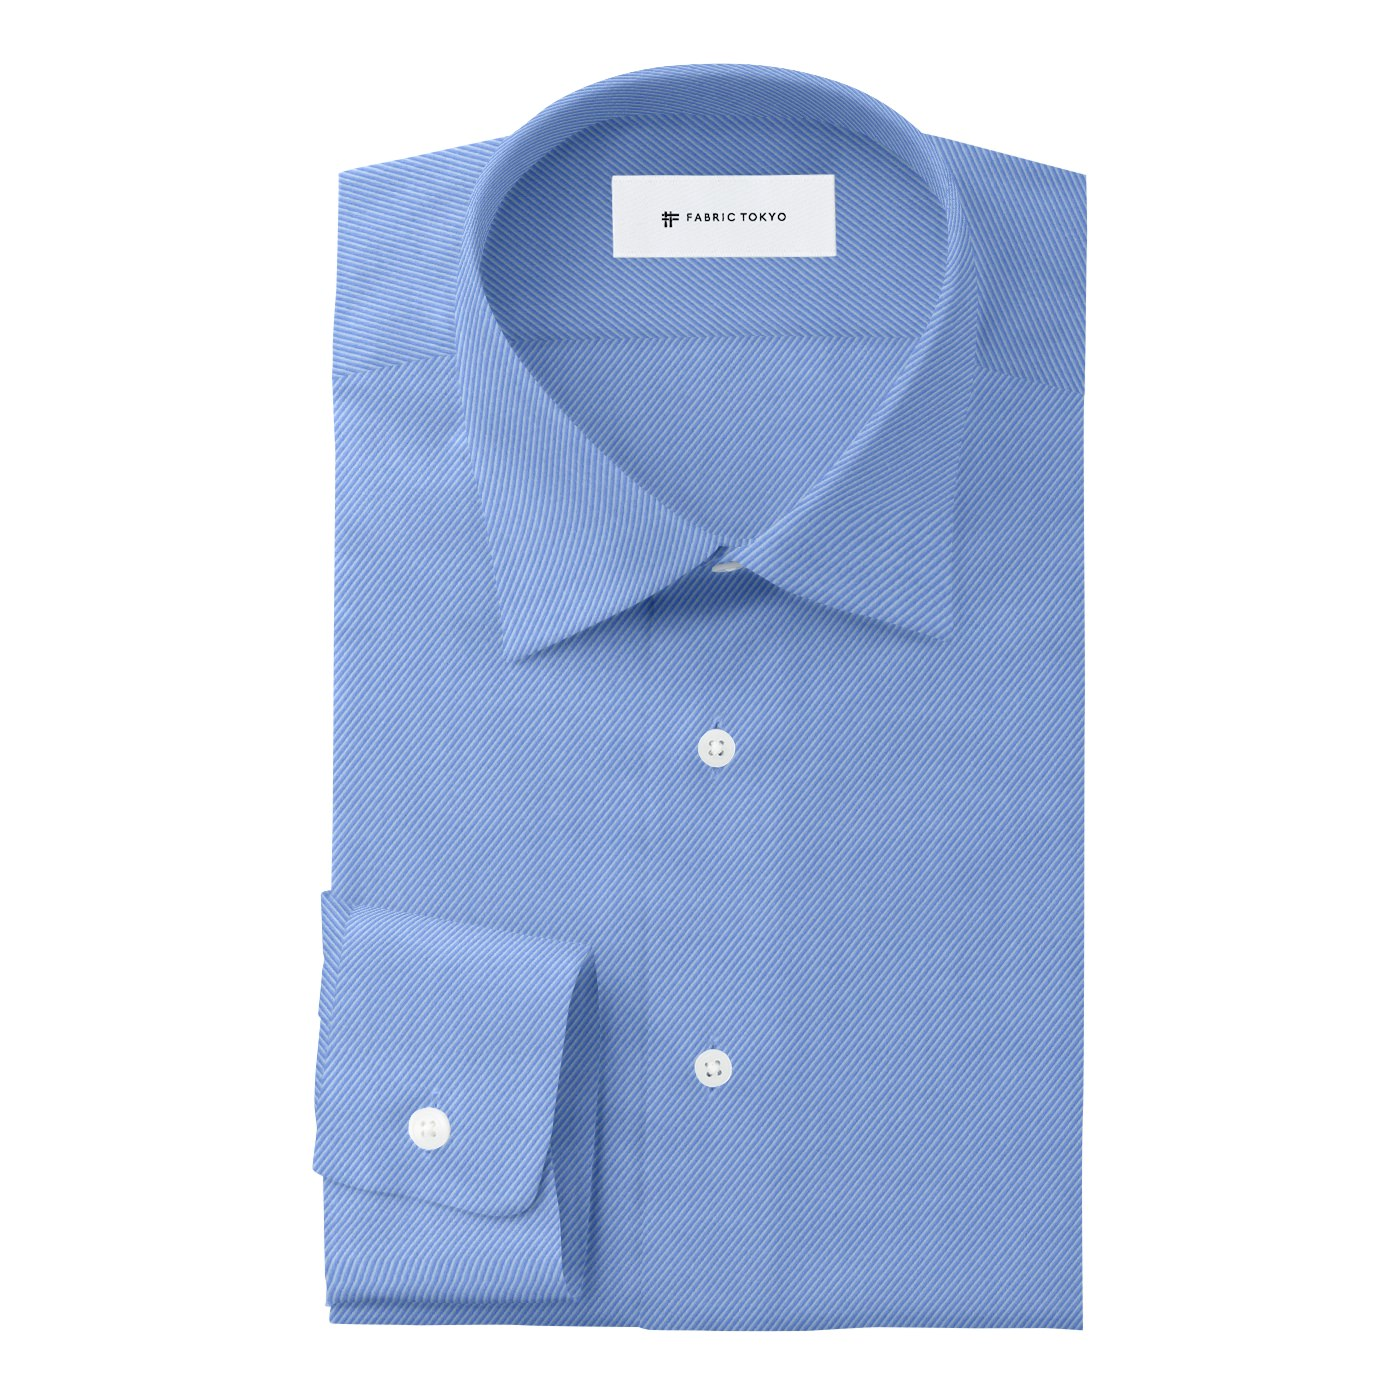 EASY CARE COTTON SHIRTS rightitem